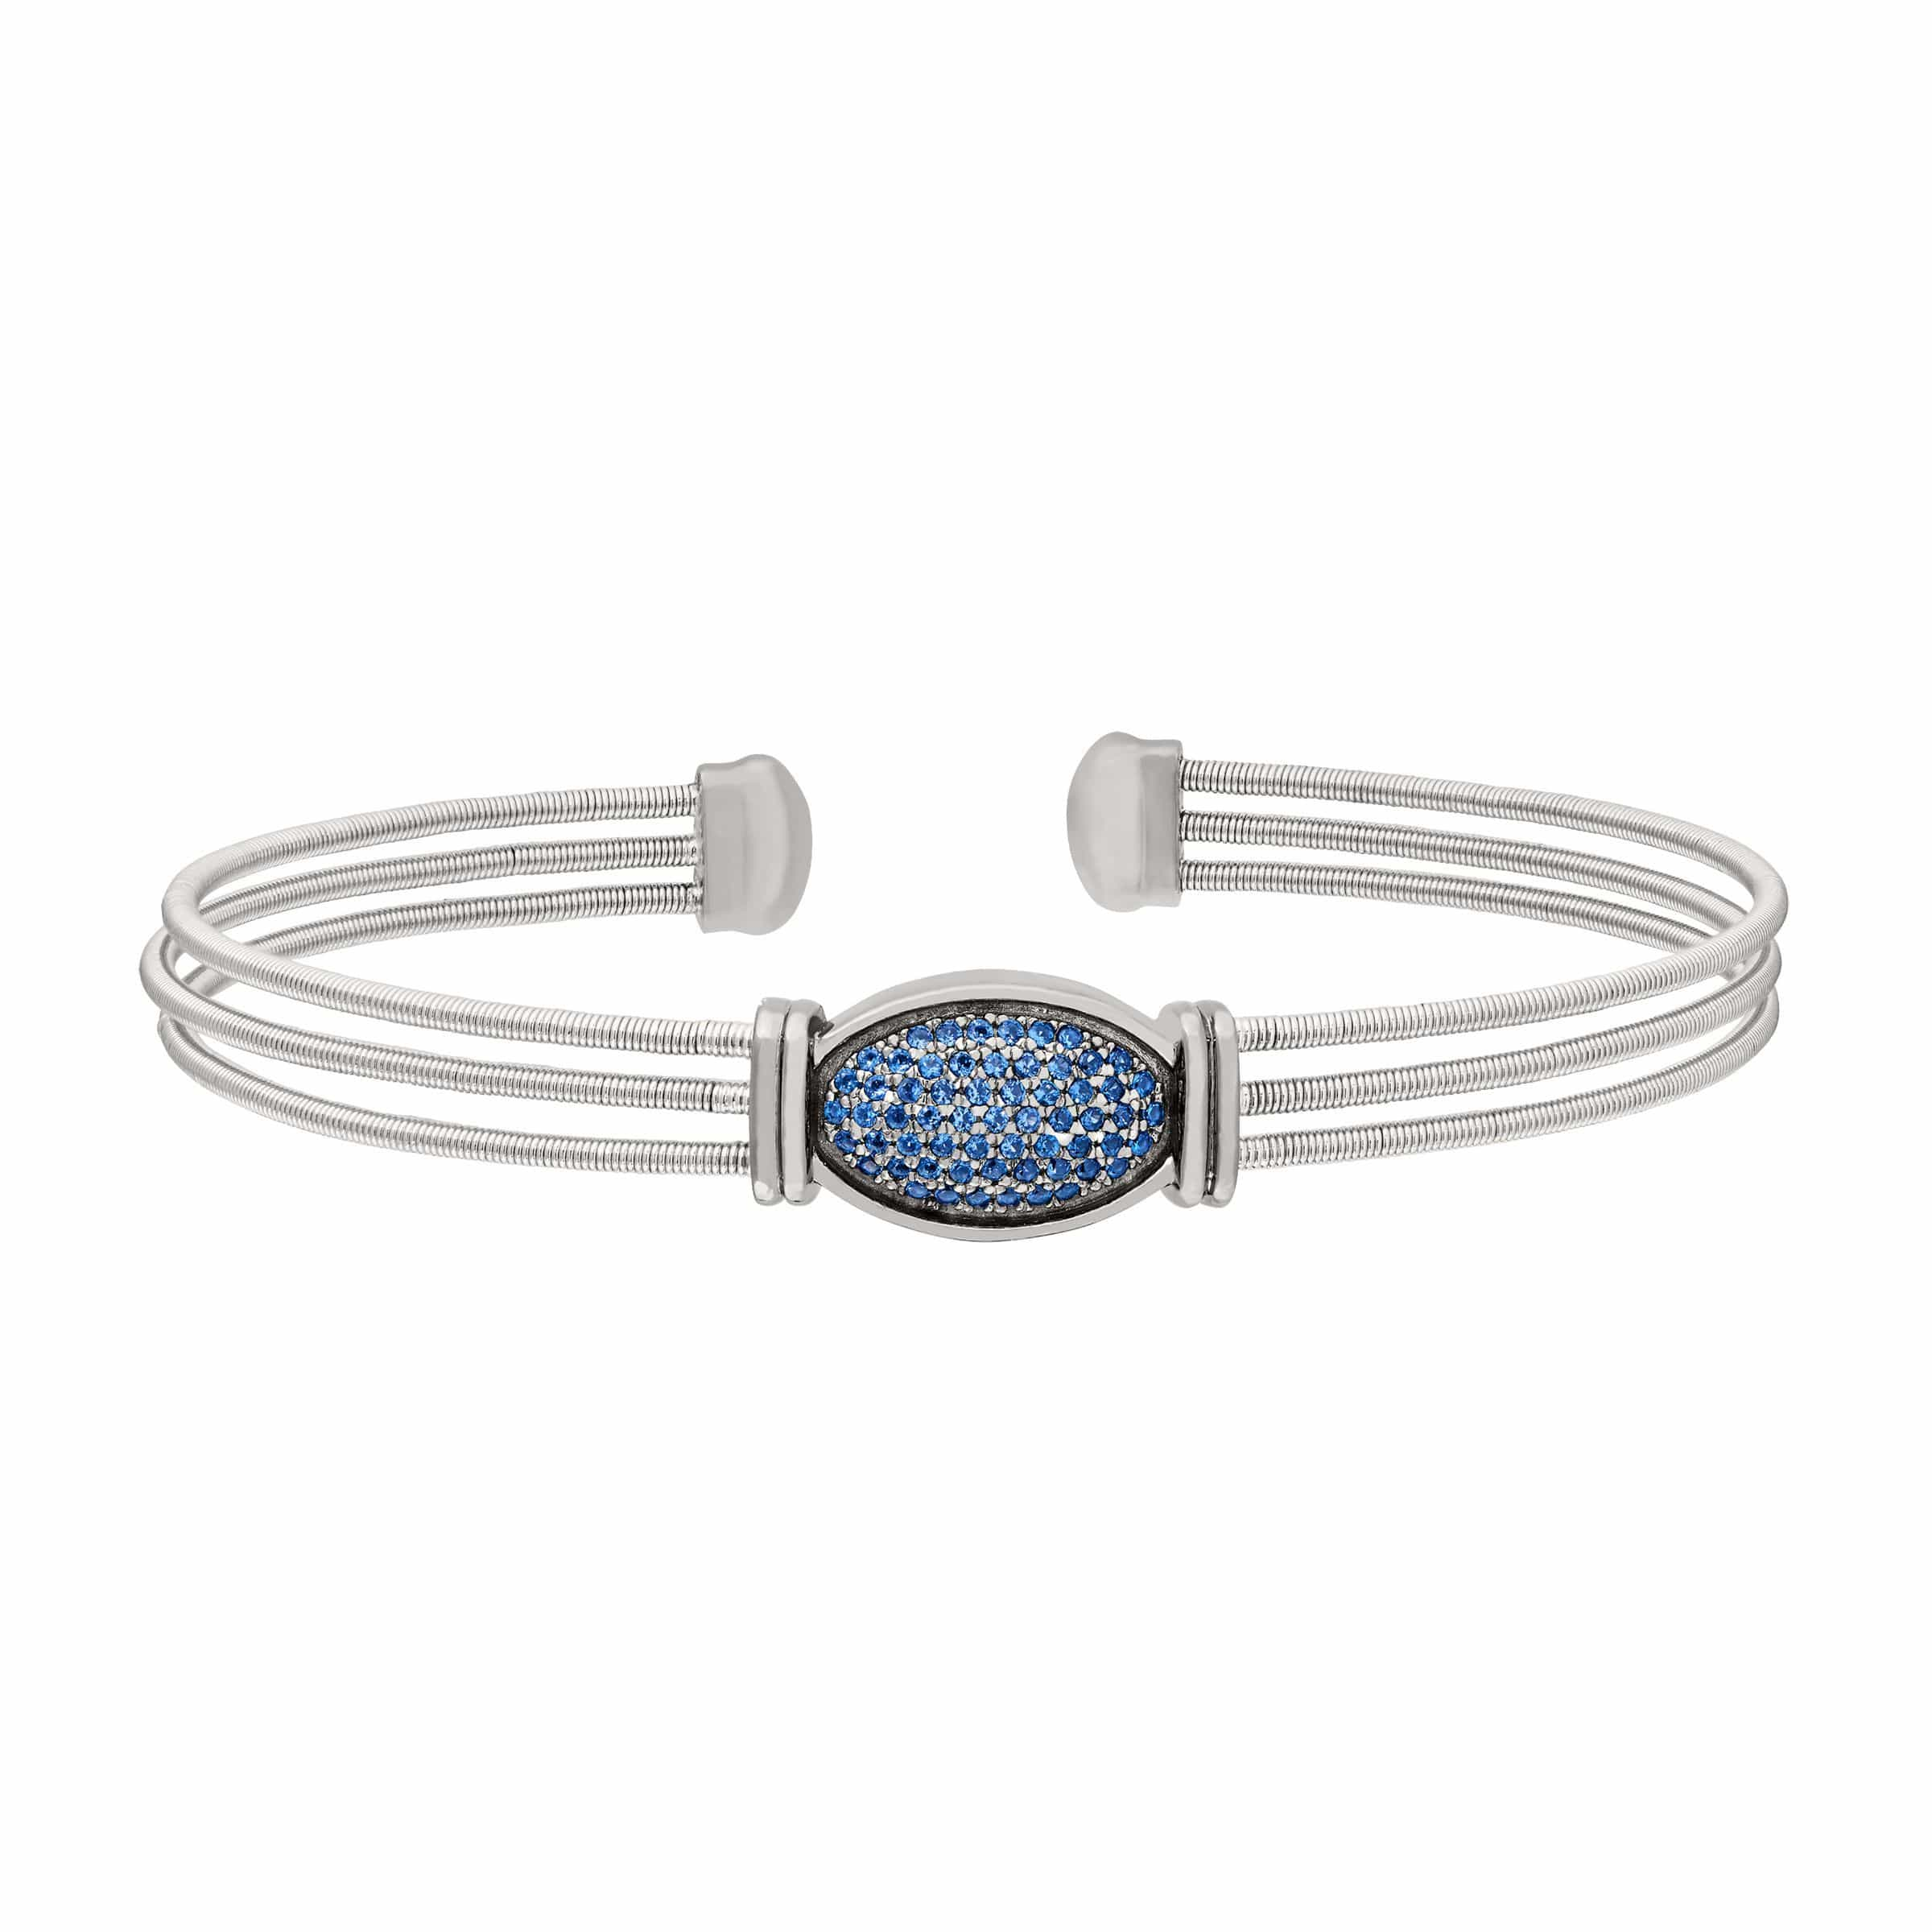 Rhodium Finish Sterling Silver Three Cable Cuff Bracelet - LL7013B-RH/BR-SAP-Kelly Waters-Renee Taylor Gallery